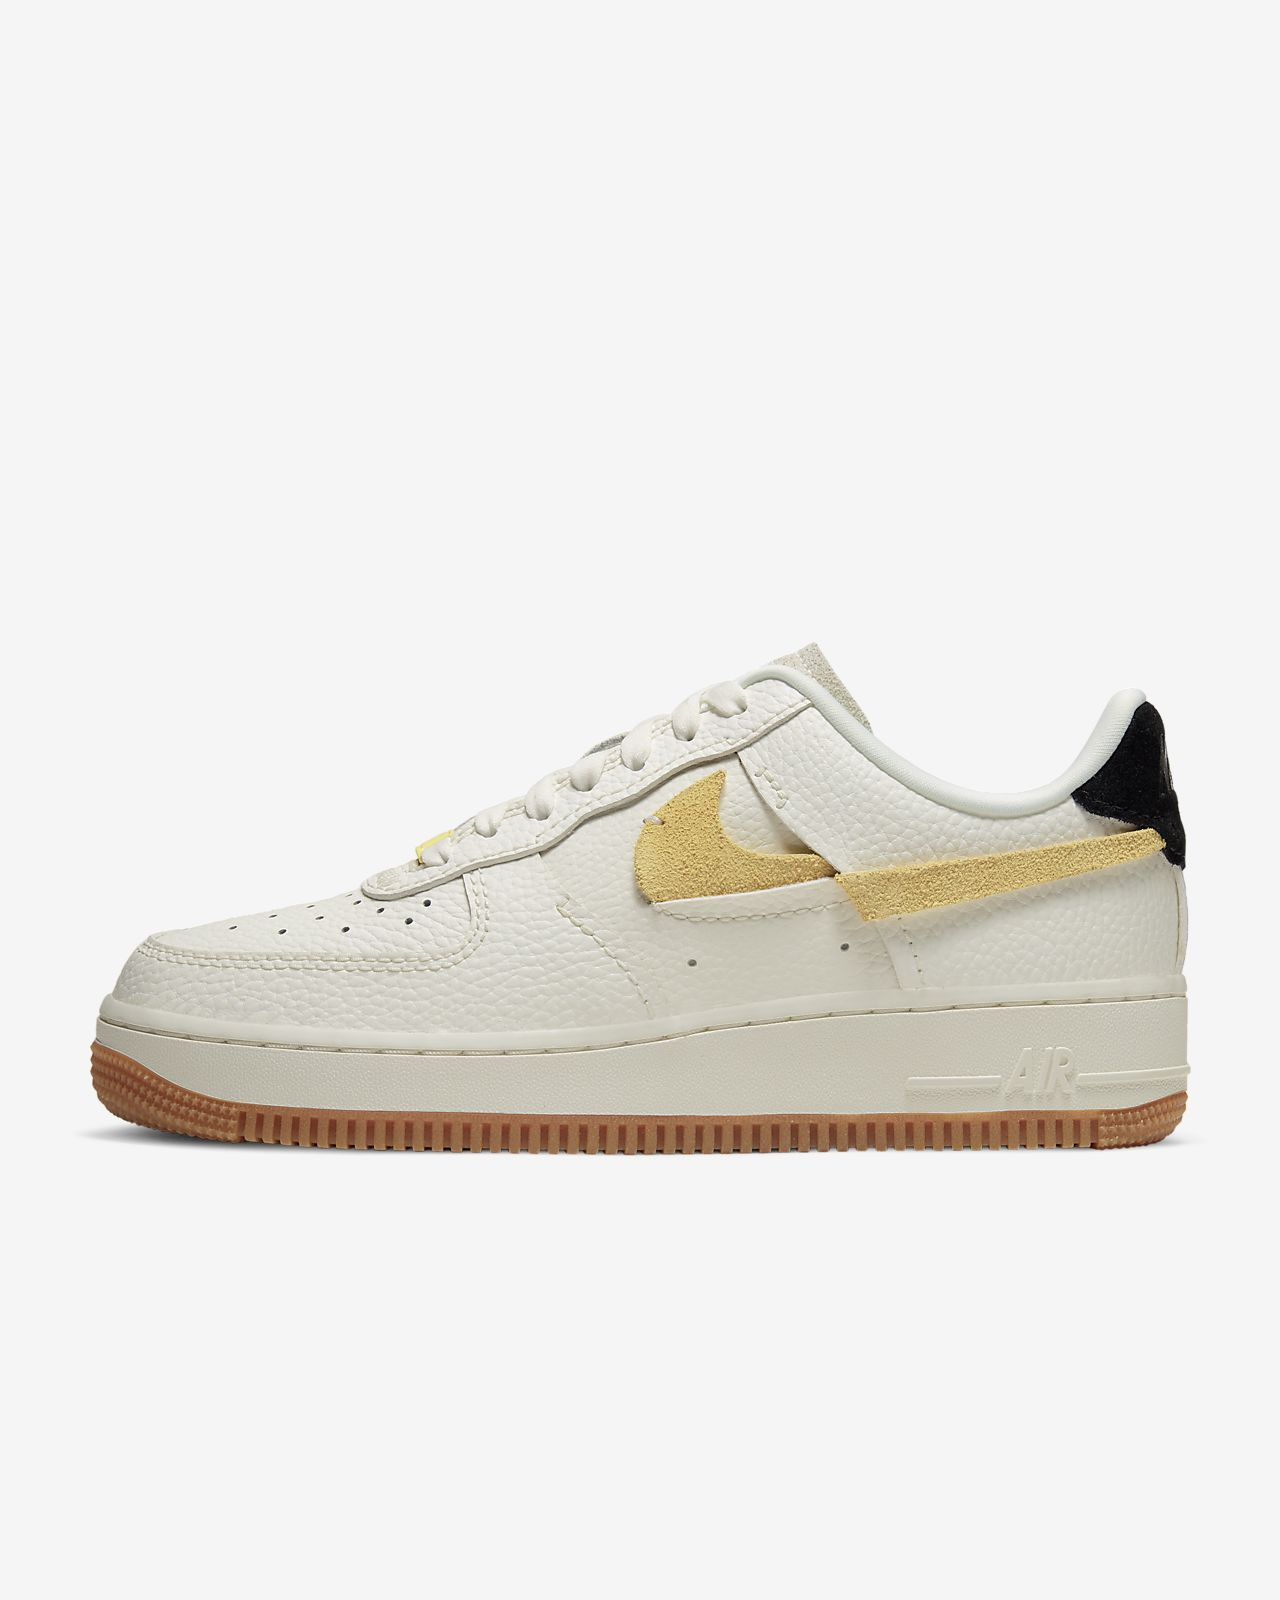 Nike Women's's Air Force 1 '07 Basketball Shoes